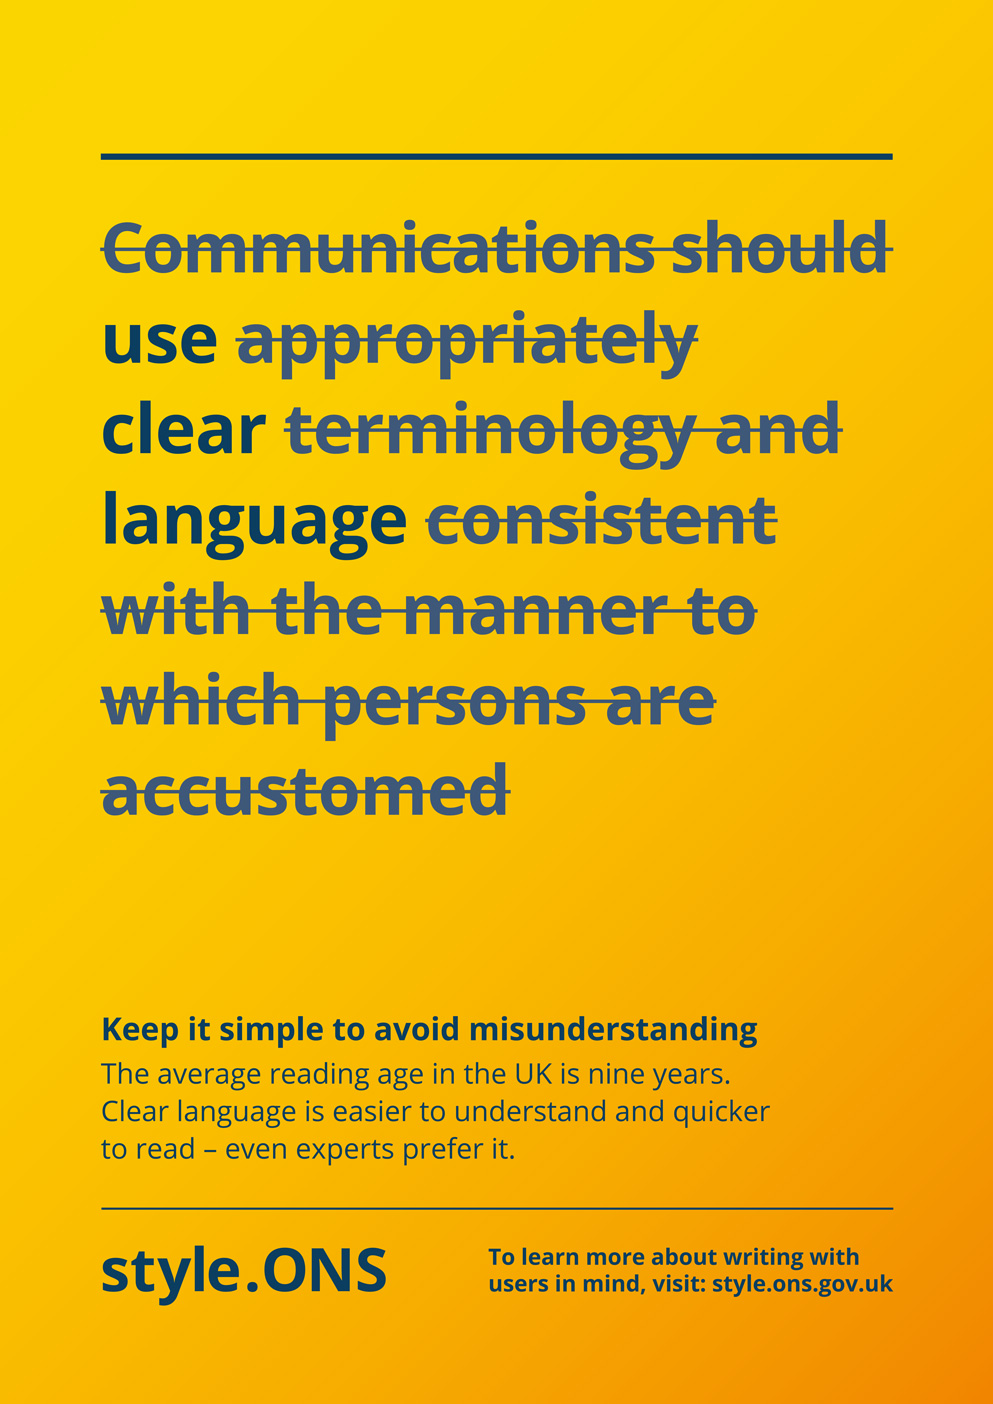 Style.ONS poster for using clear language and avoiding jargon.